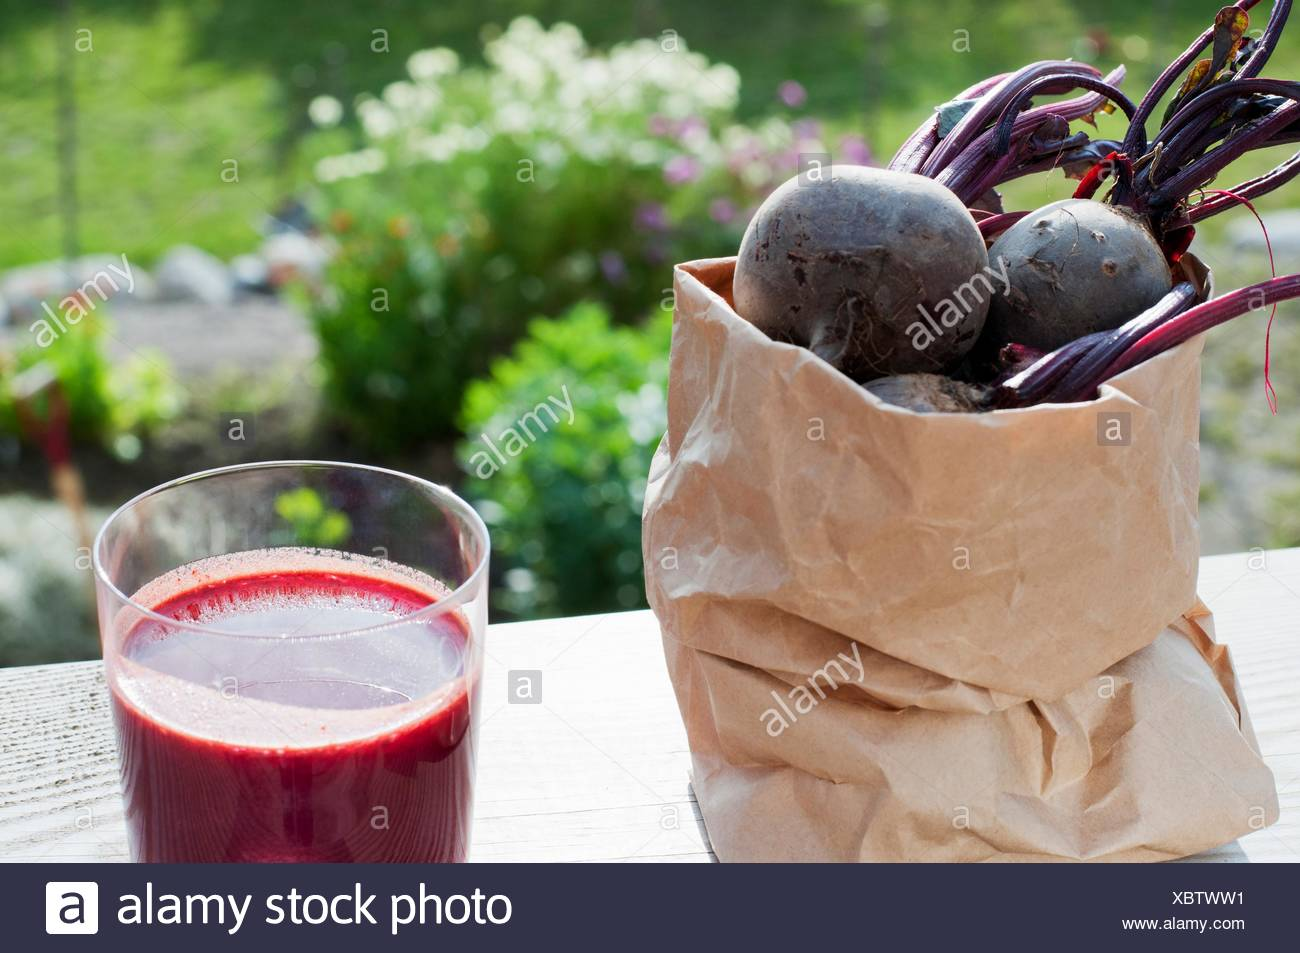 Bag of organic beetroot and glass of beetroot juice on garden table - Stock Image